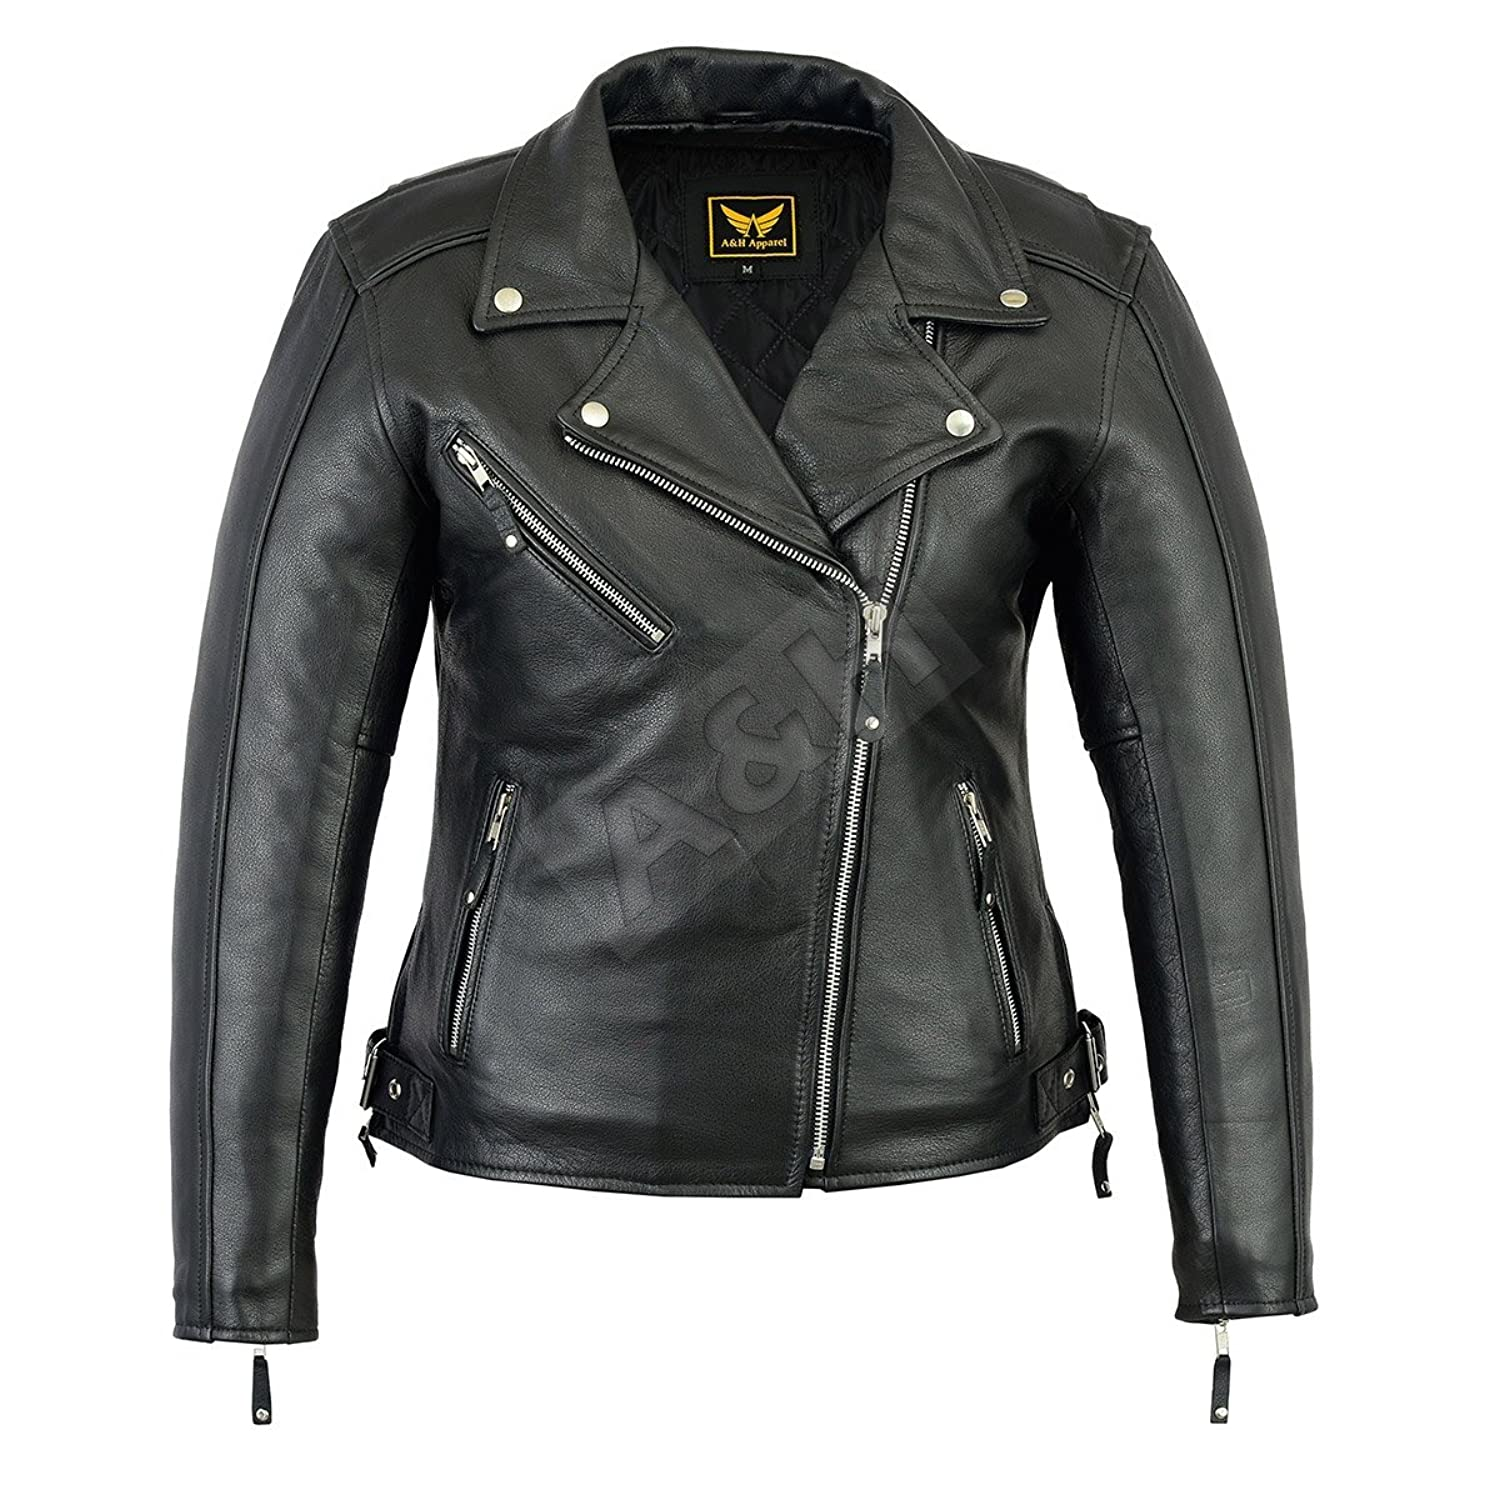 A&H Apparel Womens Ladies Motorcycle Leather Jacket Genuine Cowhide Durable Motorcycle and Casual Leather Jacket Gun Pocket